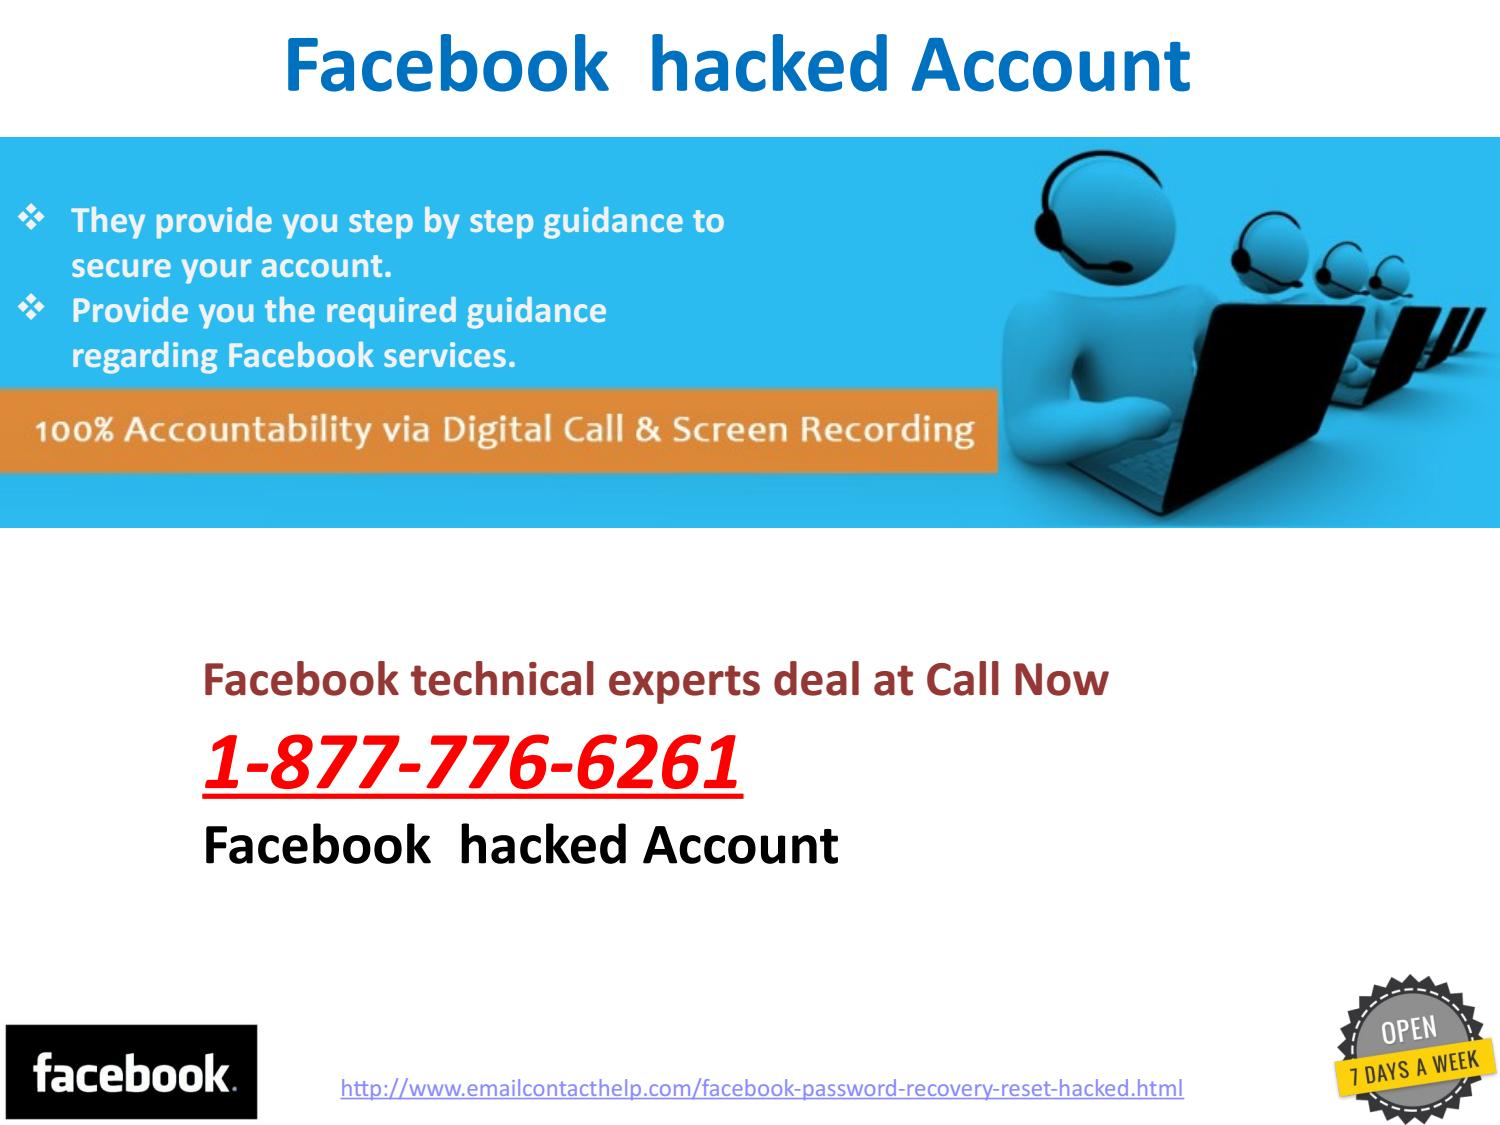 Facebook hacked Account 1-877-776-6261 Is What You Are